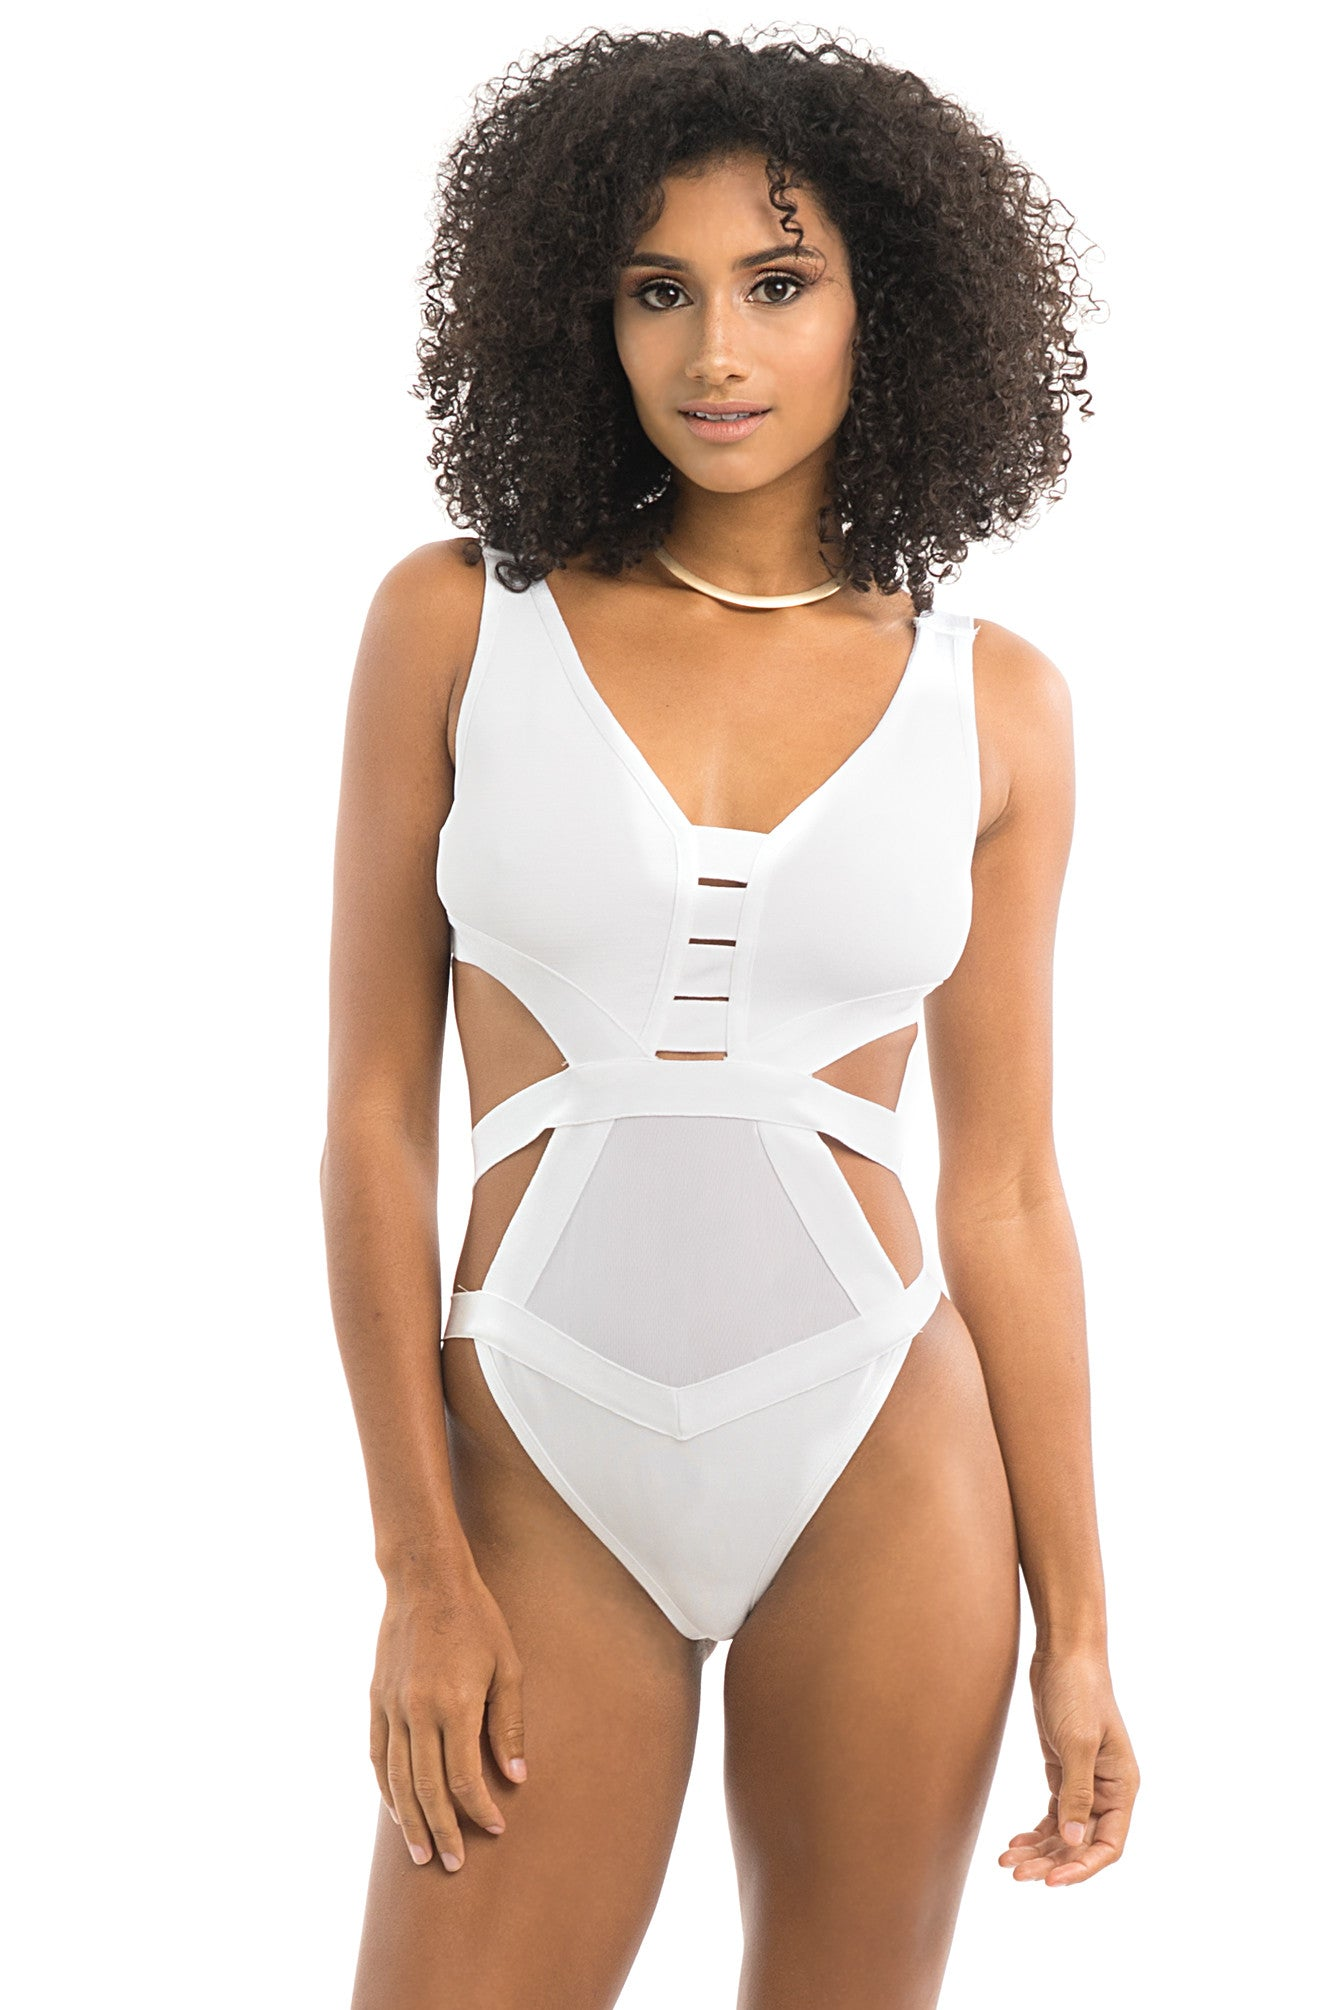 fbf9c9d046811 Perfect Swimsuit For Spring Summer 2017 - Style Link Miami